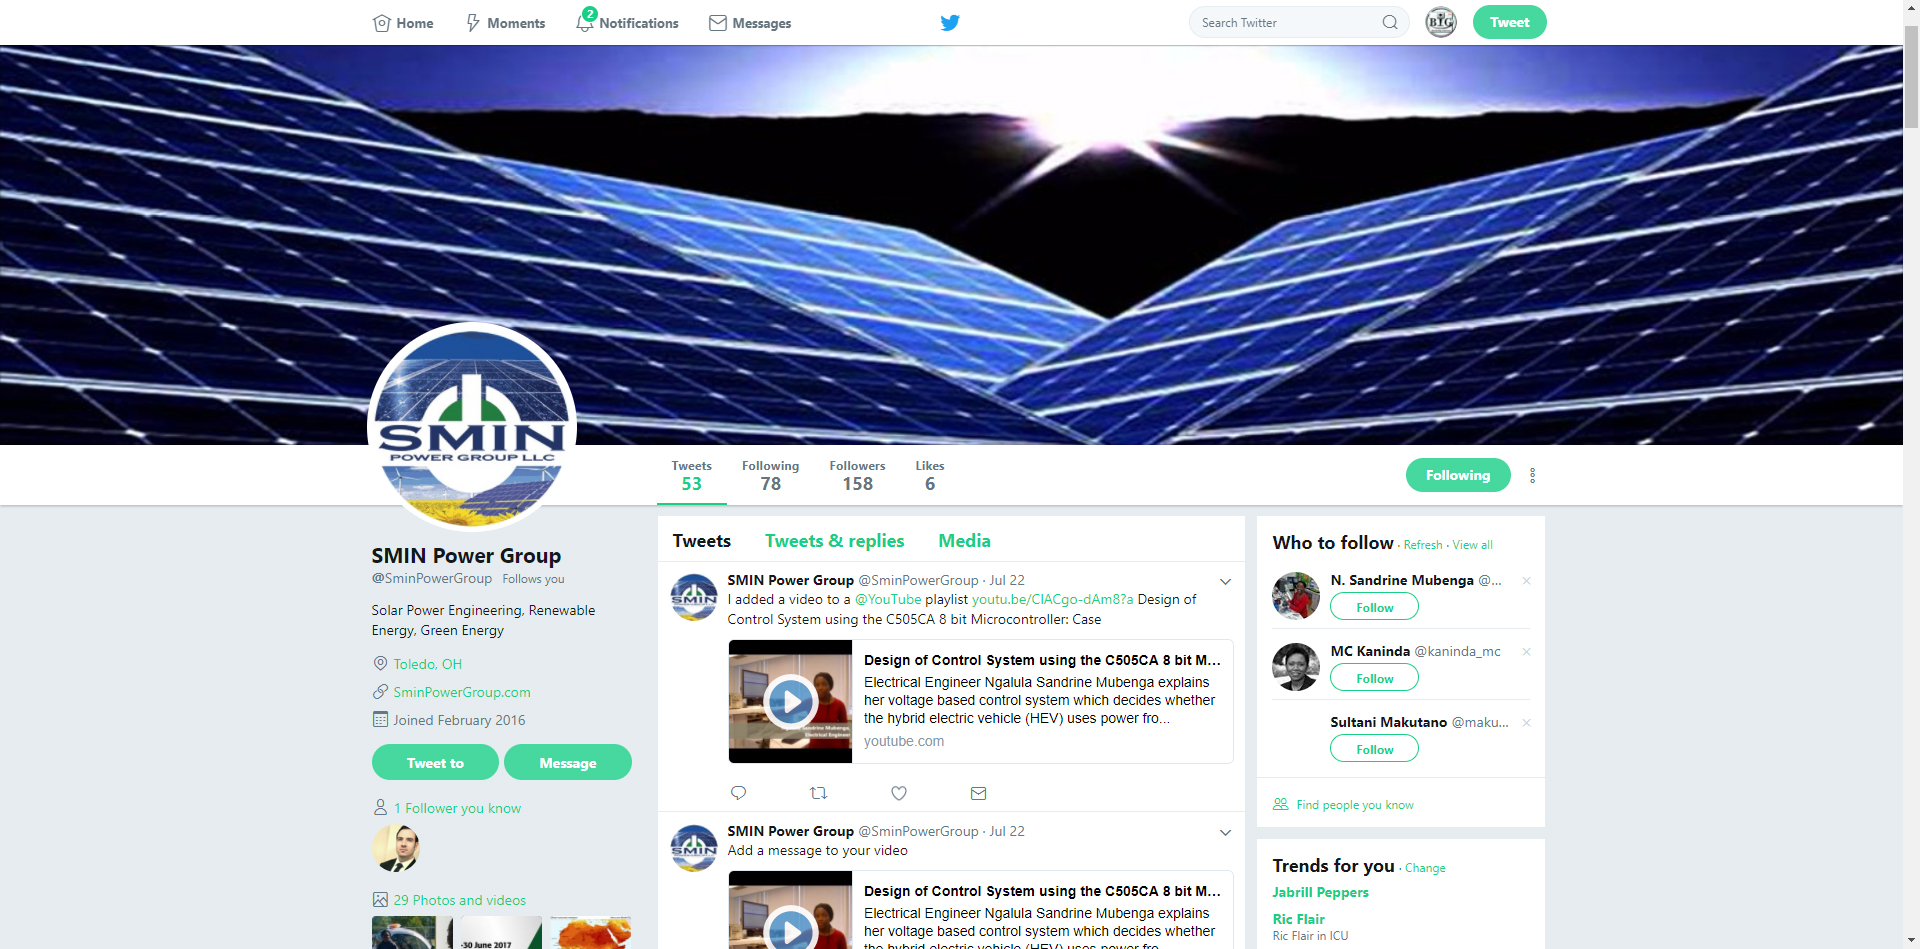 Twitter Account Design and Management